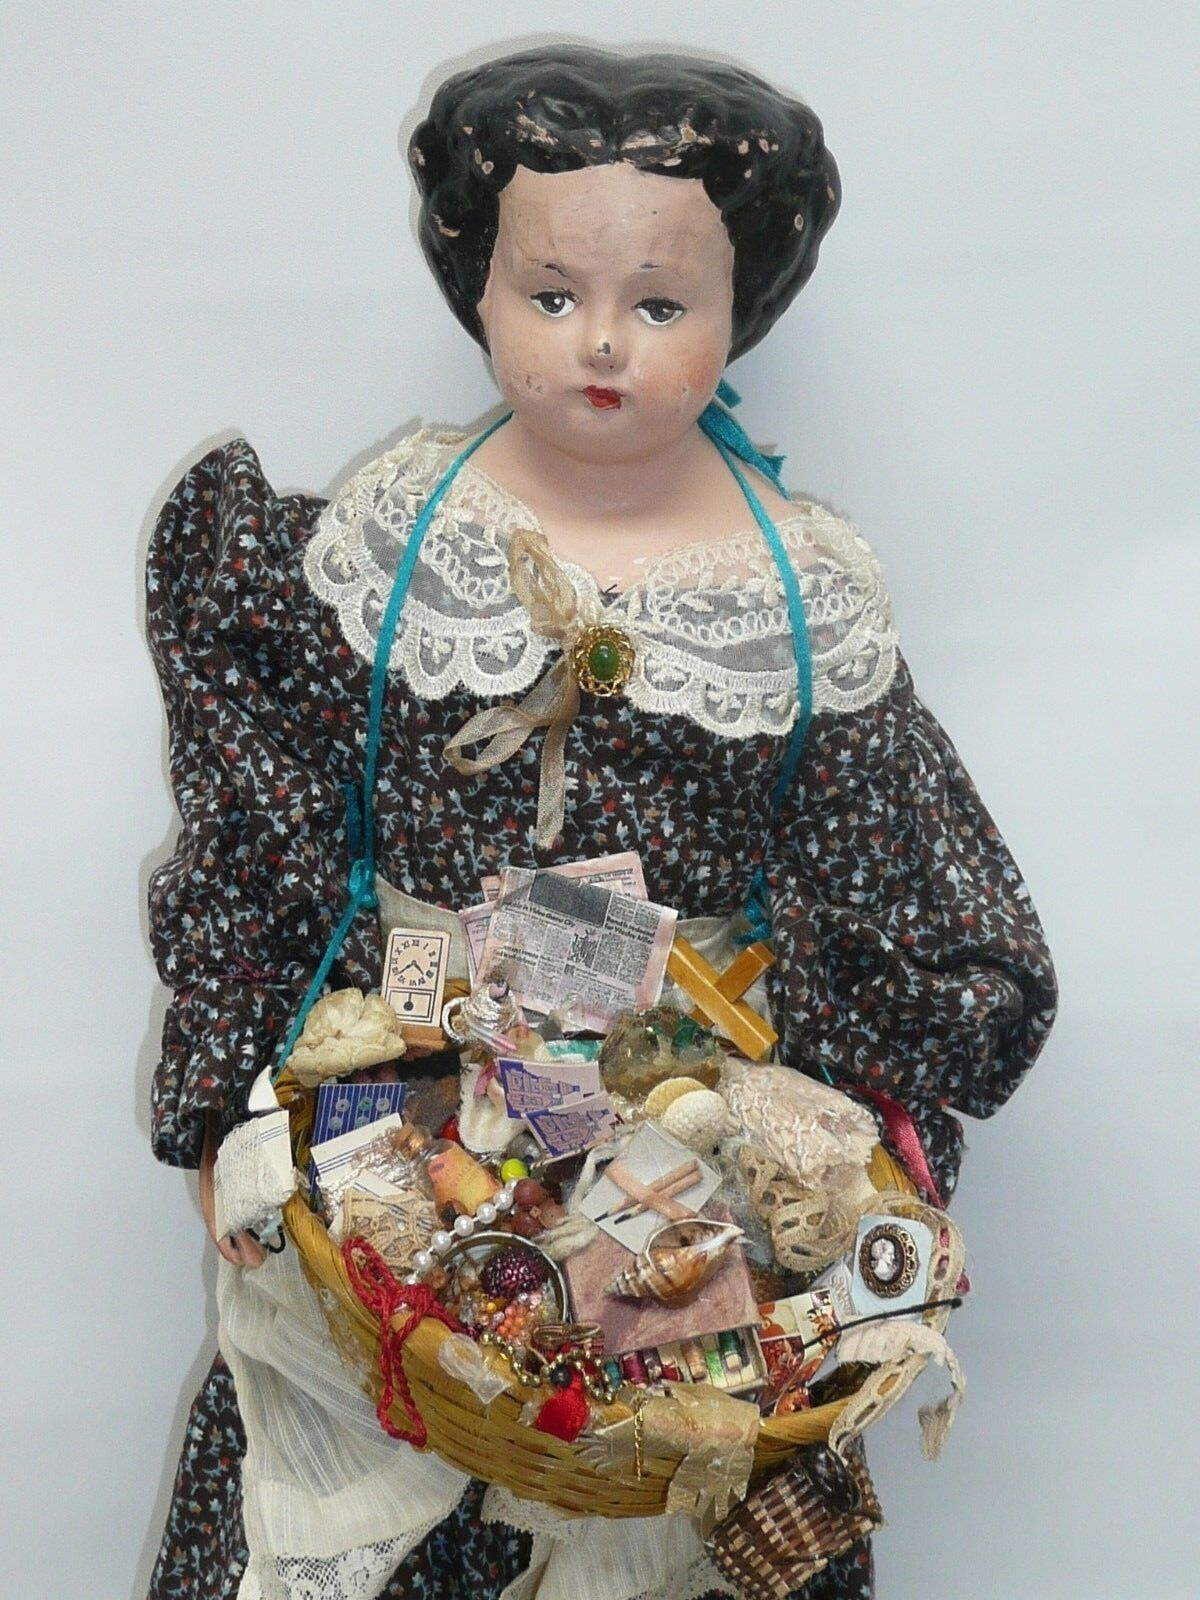 21  Vintage Peddler Doll, Wonderful Detailing, Antique Looking, As Found